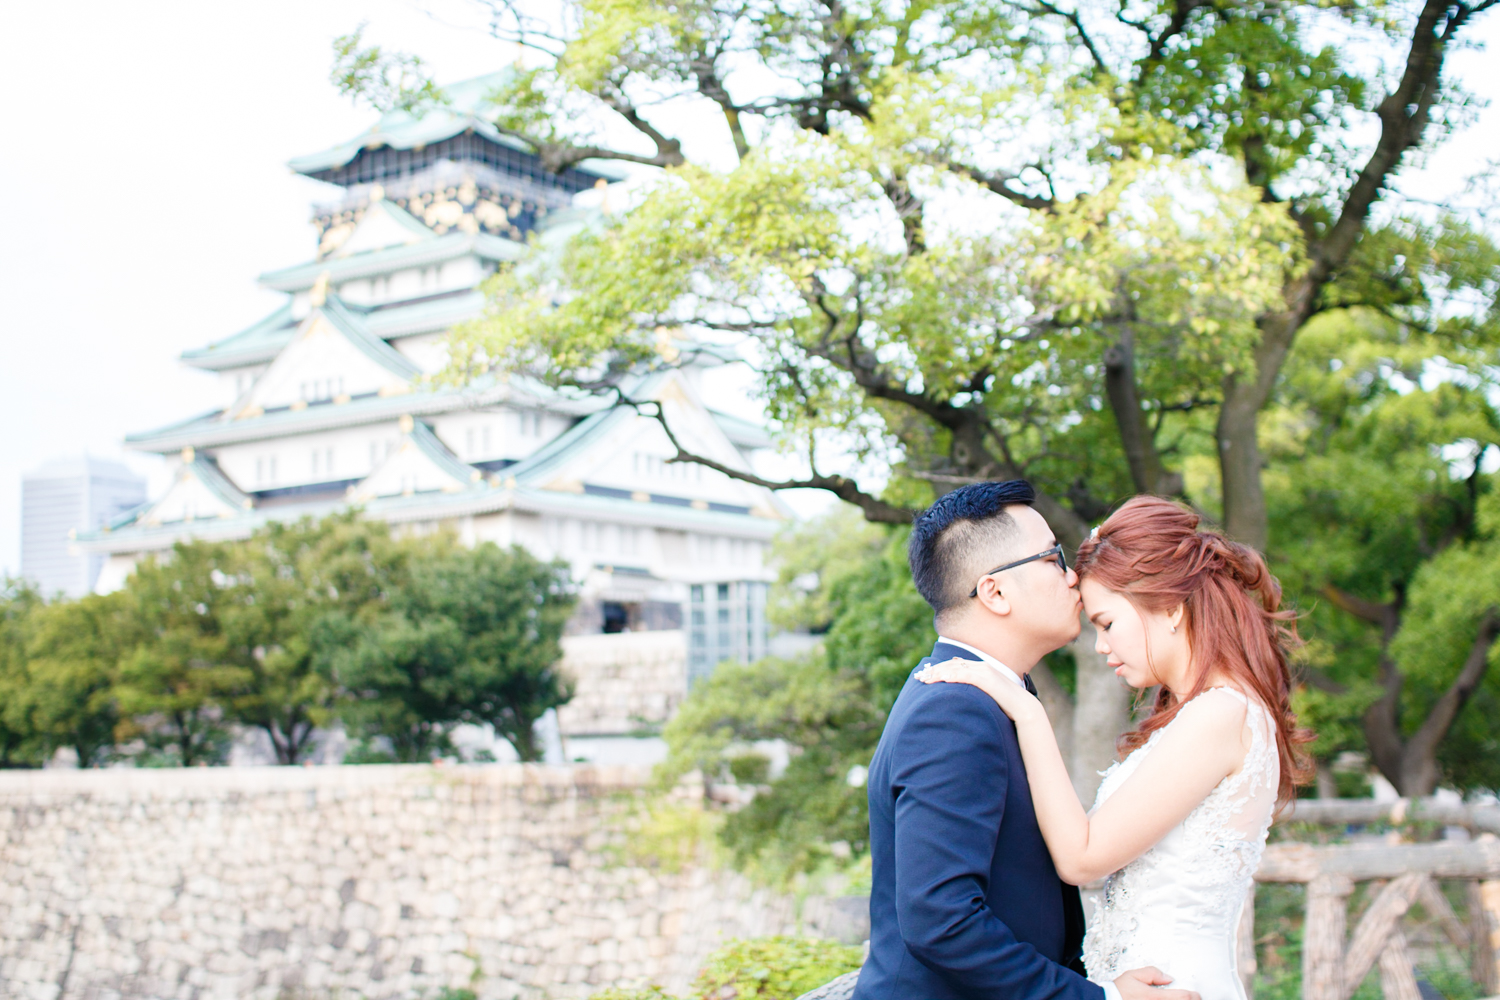 photo tour with professional photographer in osaka